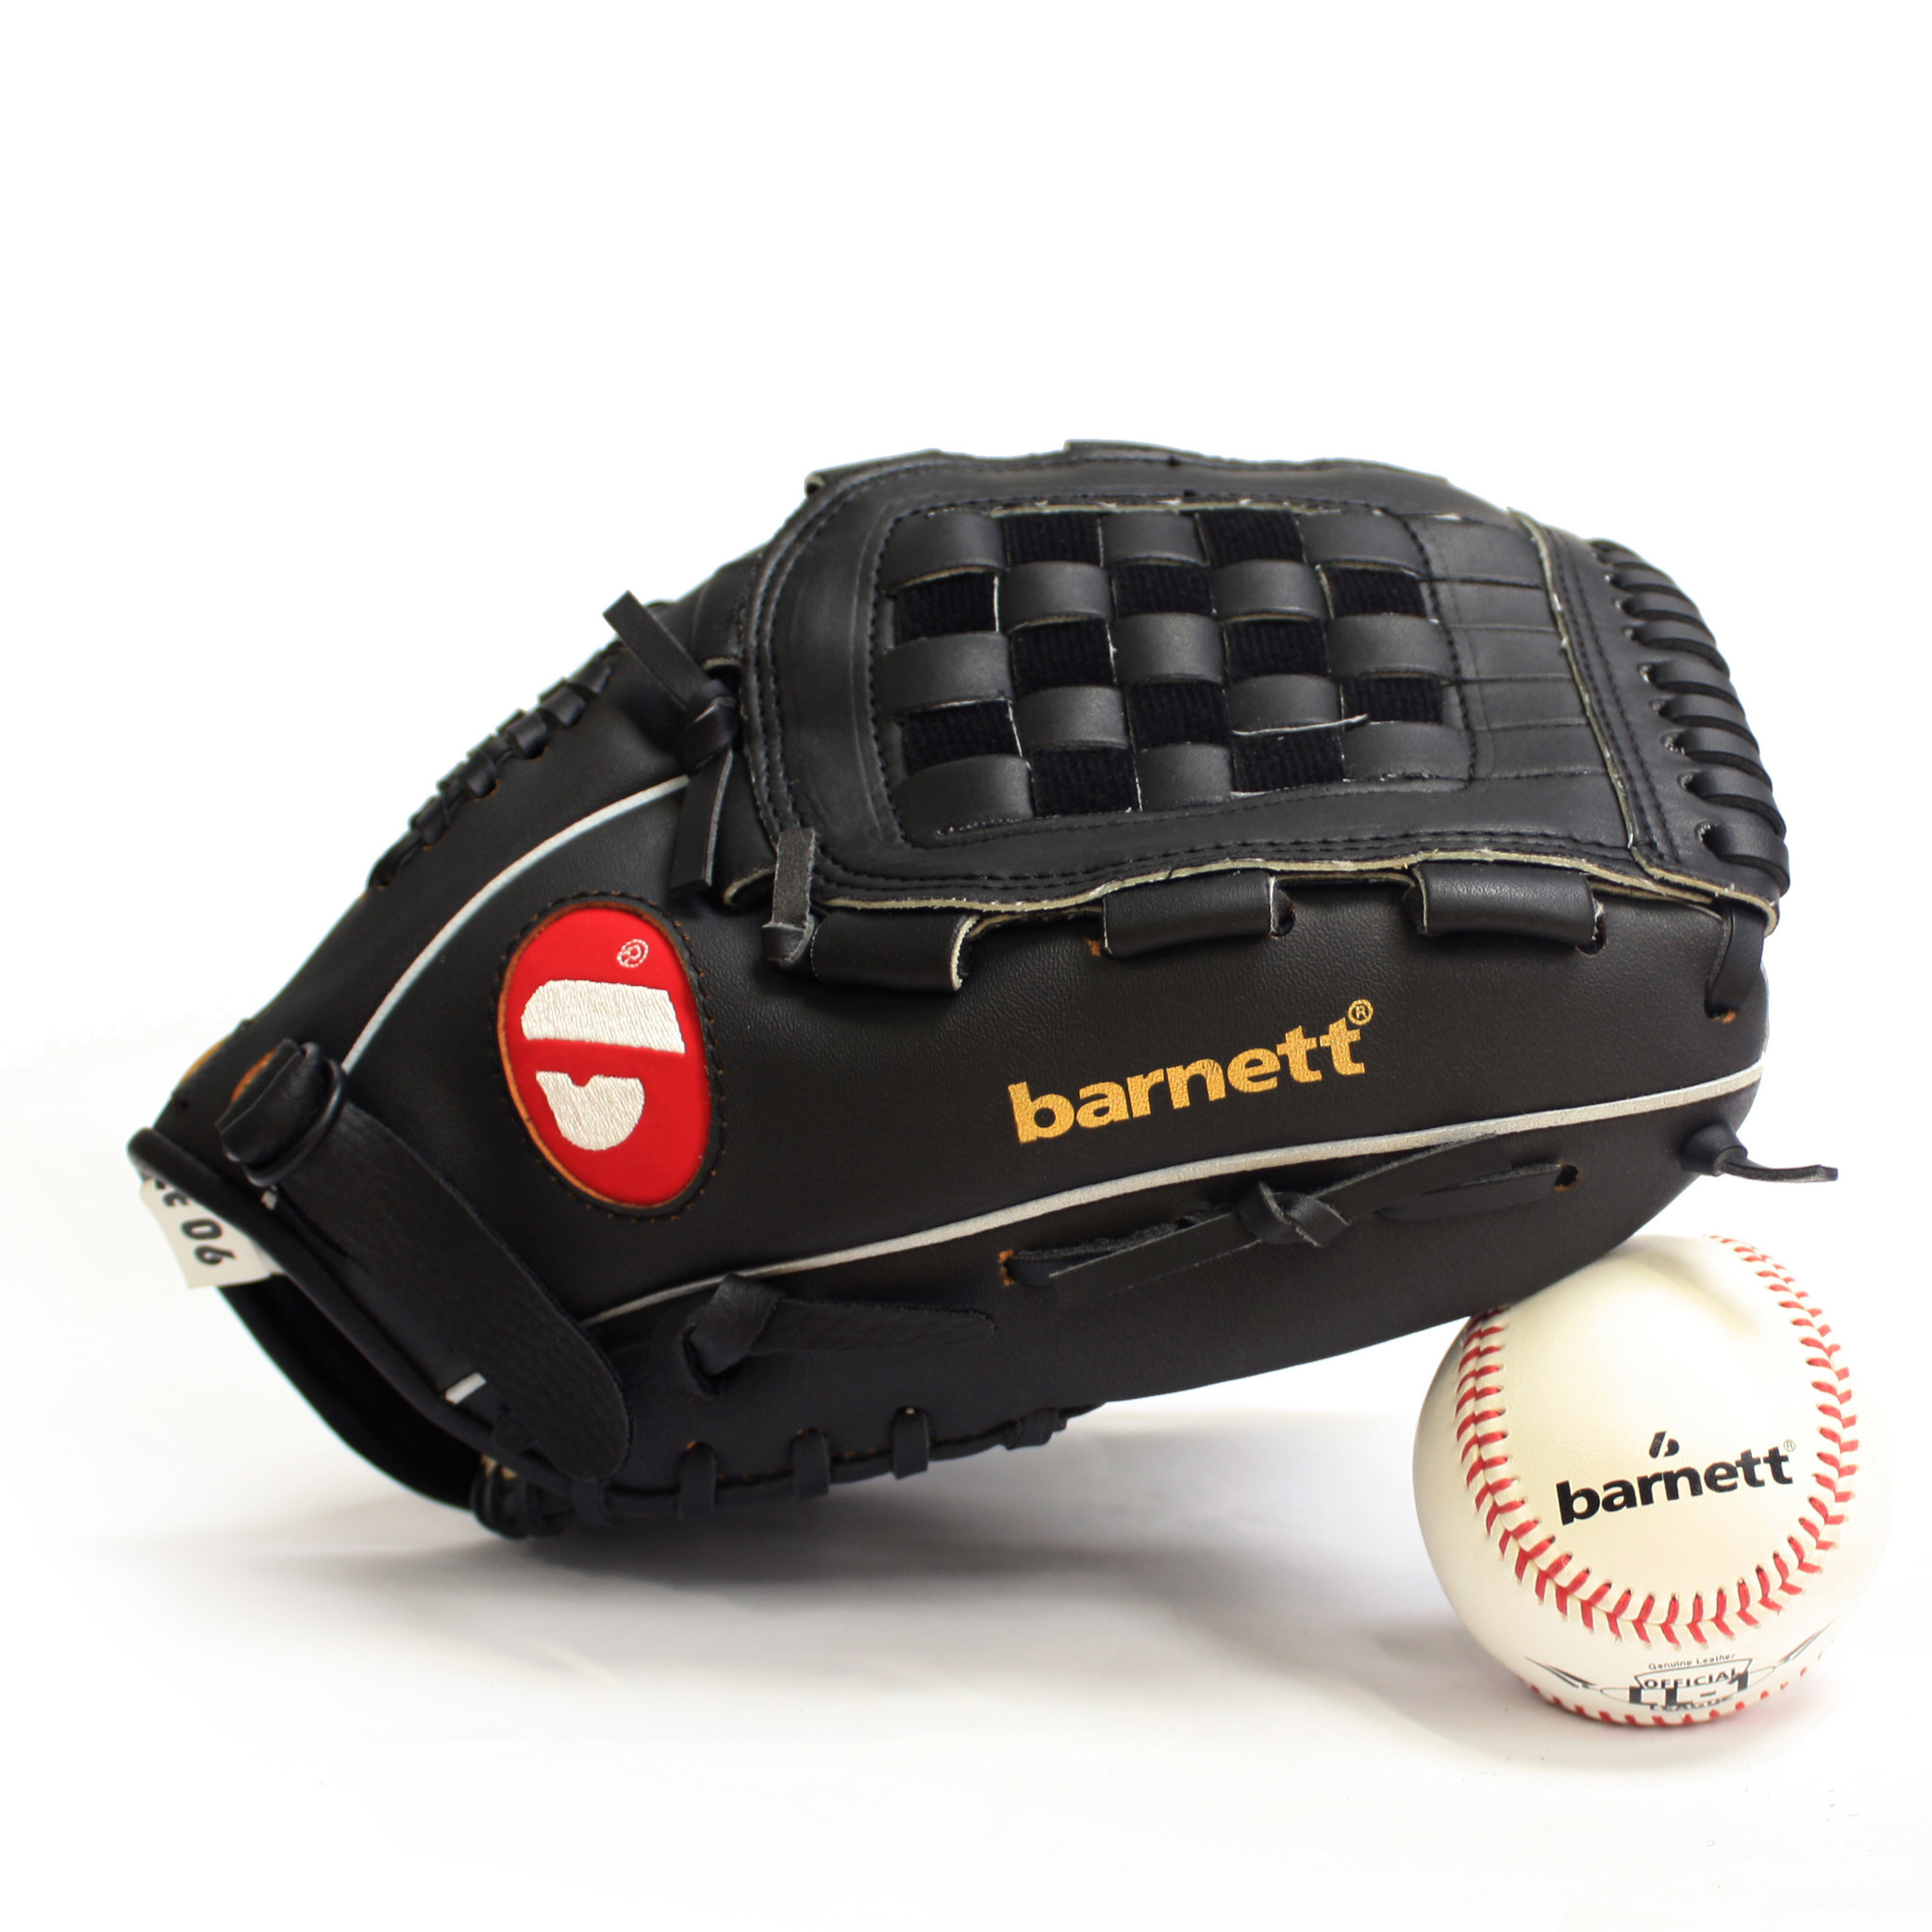 Barnett BGBW-03  wooden baseball kit for juniors  (BB-W 25, JL-110, BS-1)